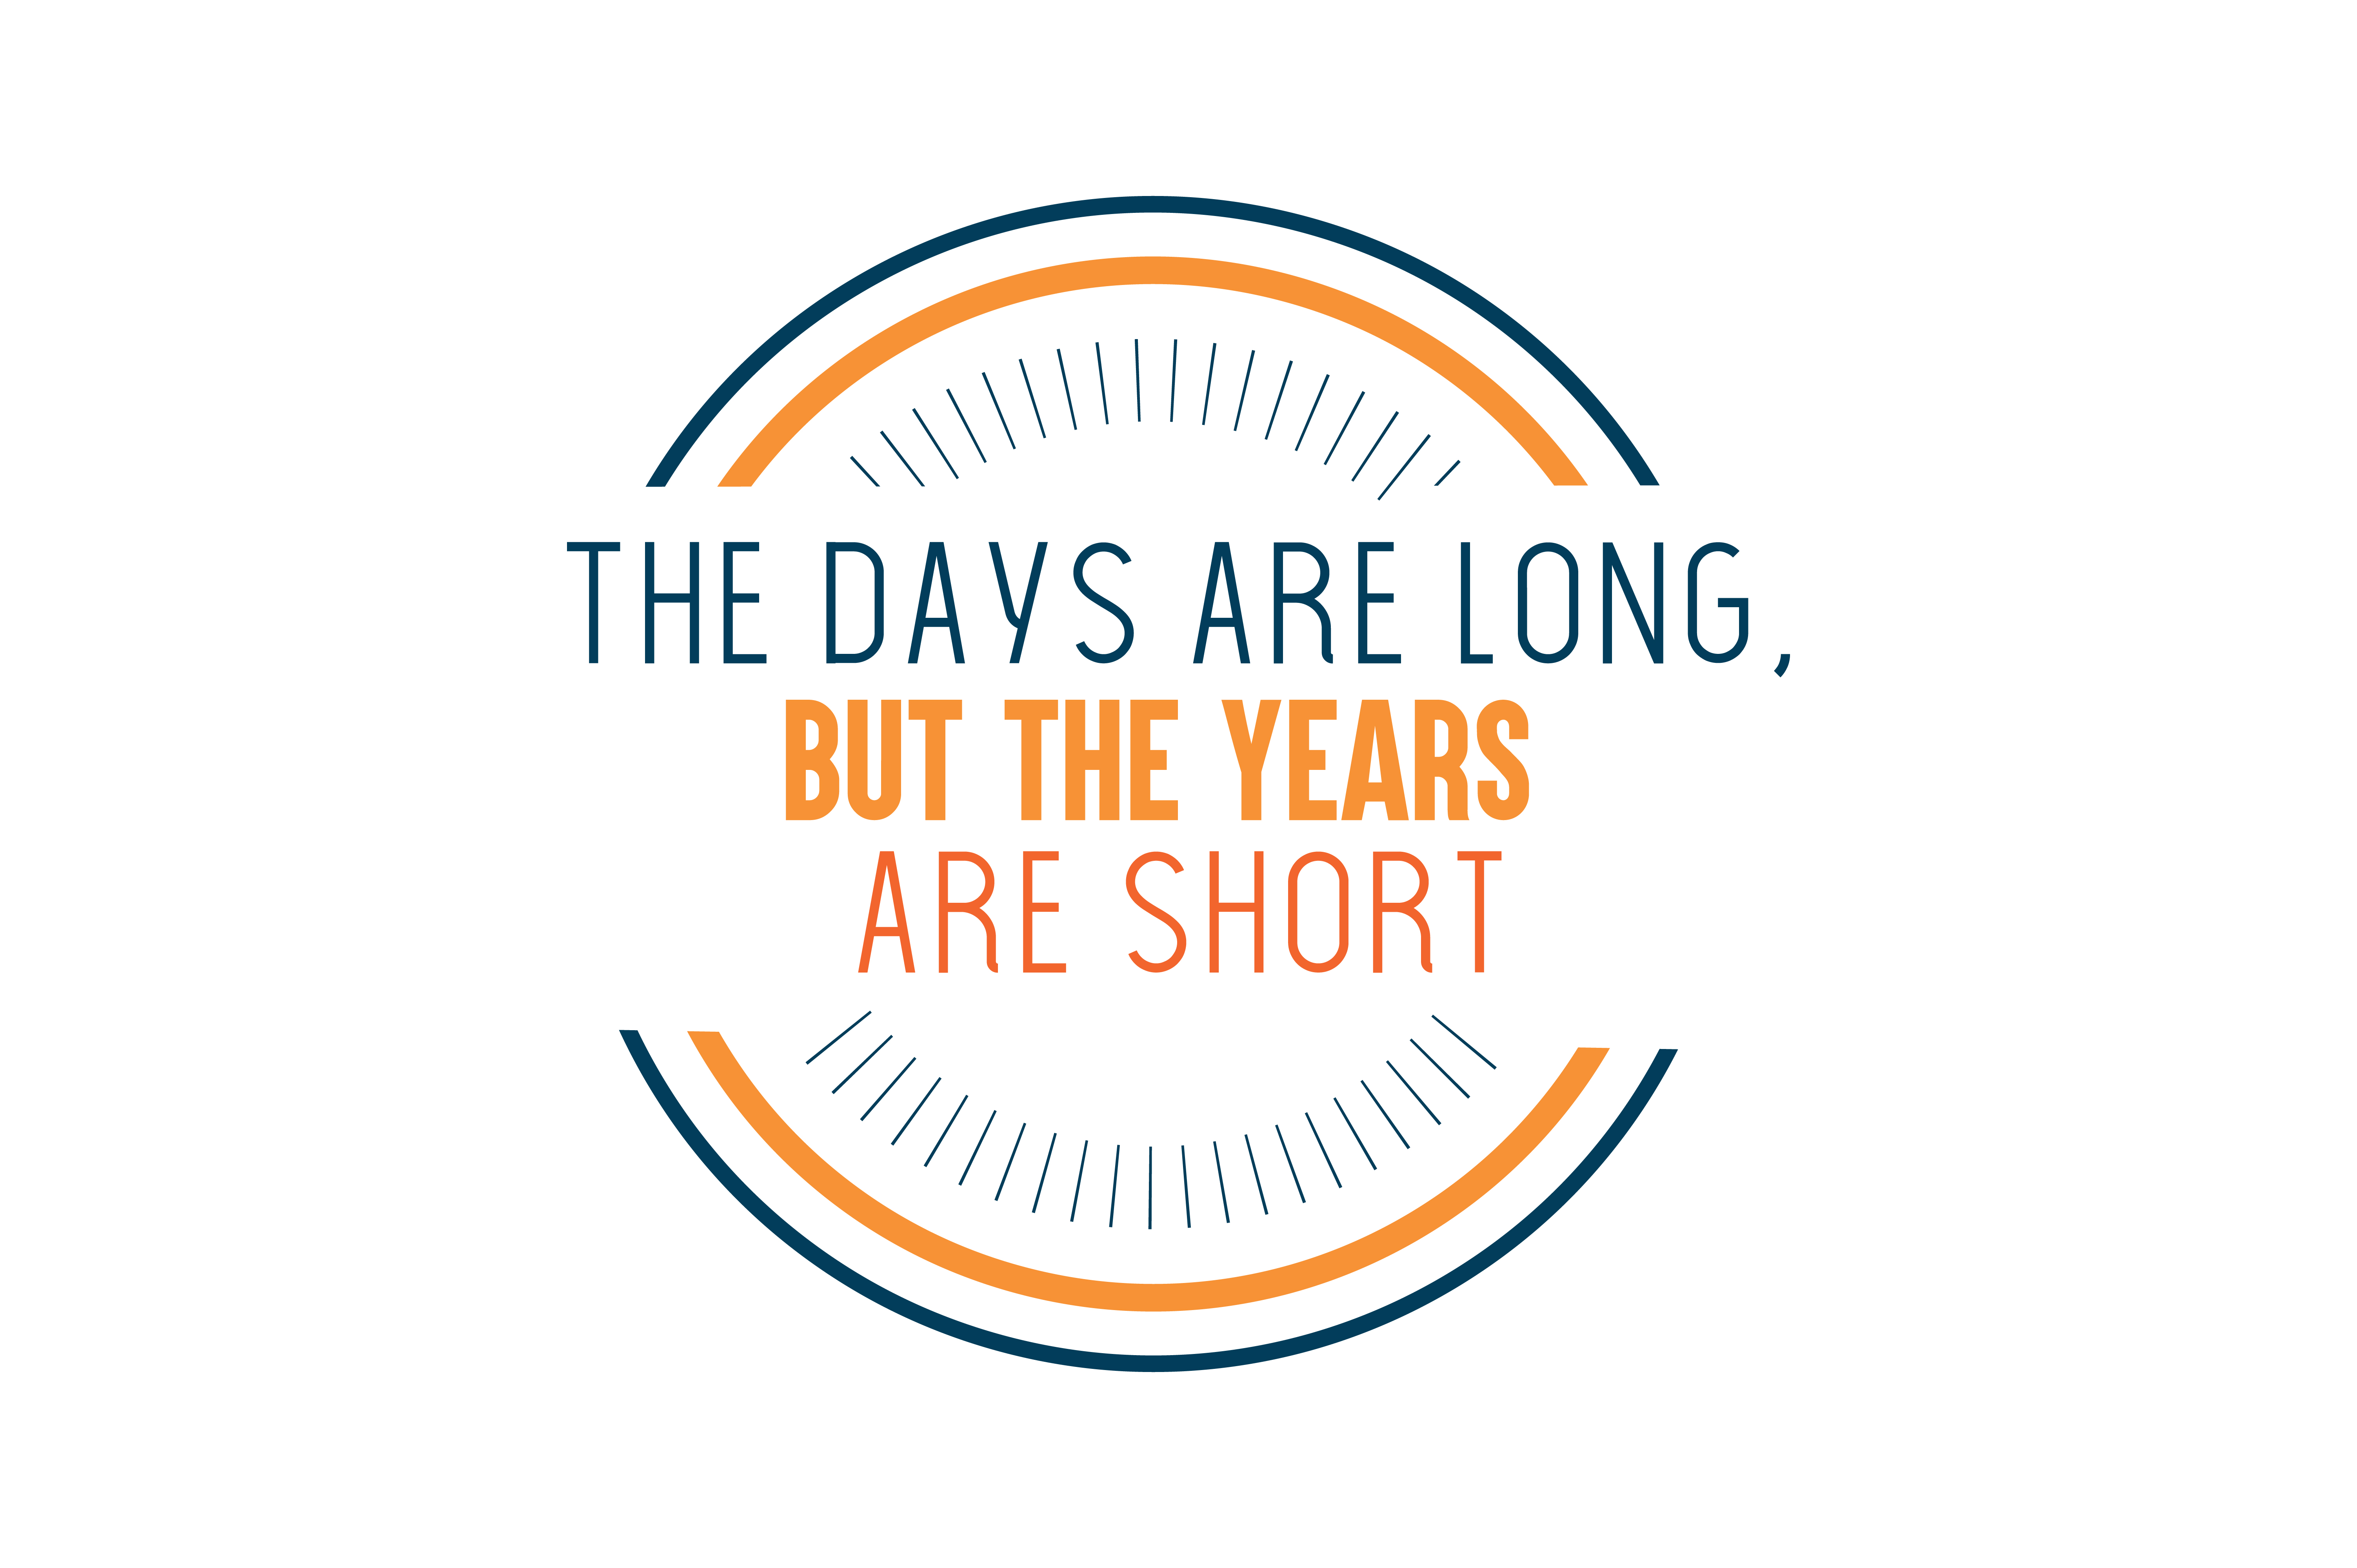 The Days Are Longbut The Years Are Short Quote Svg Cut Graphic By